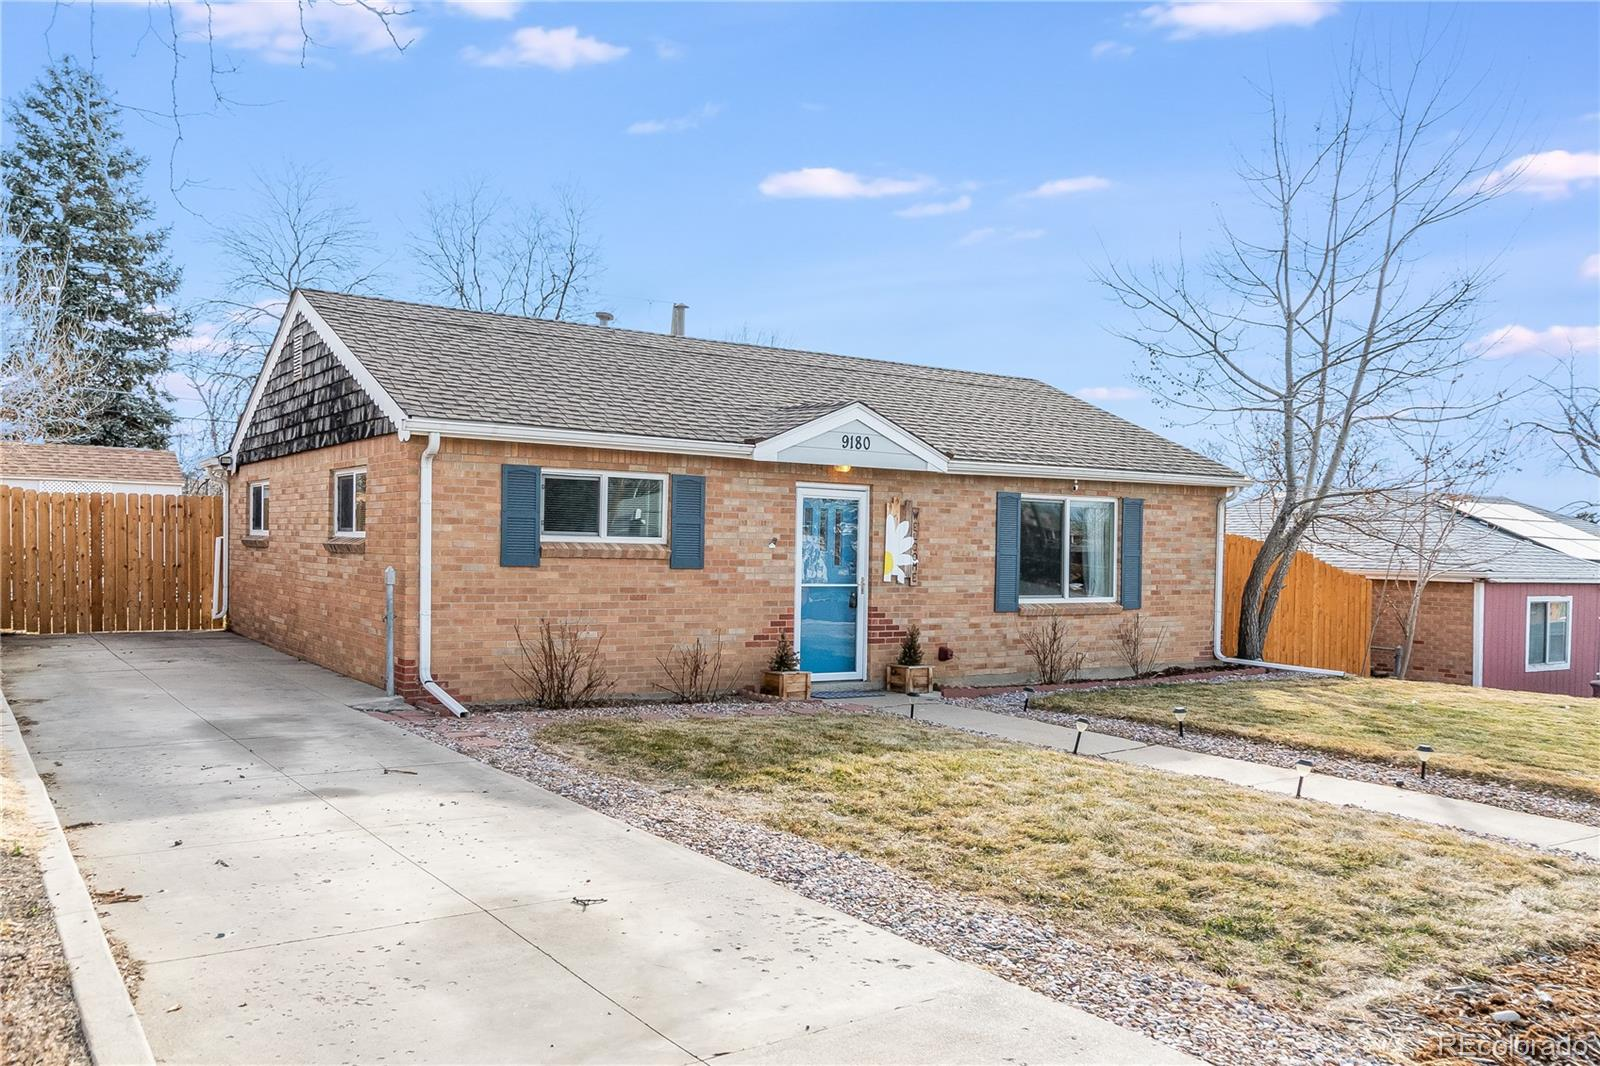 MLS# 3071138 - 9180 Emerson Street, Thornton, CO 80229